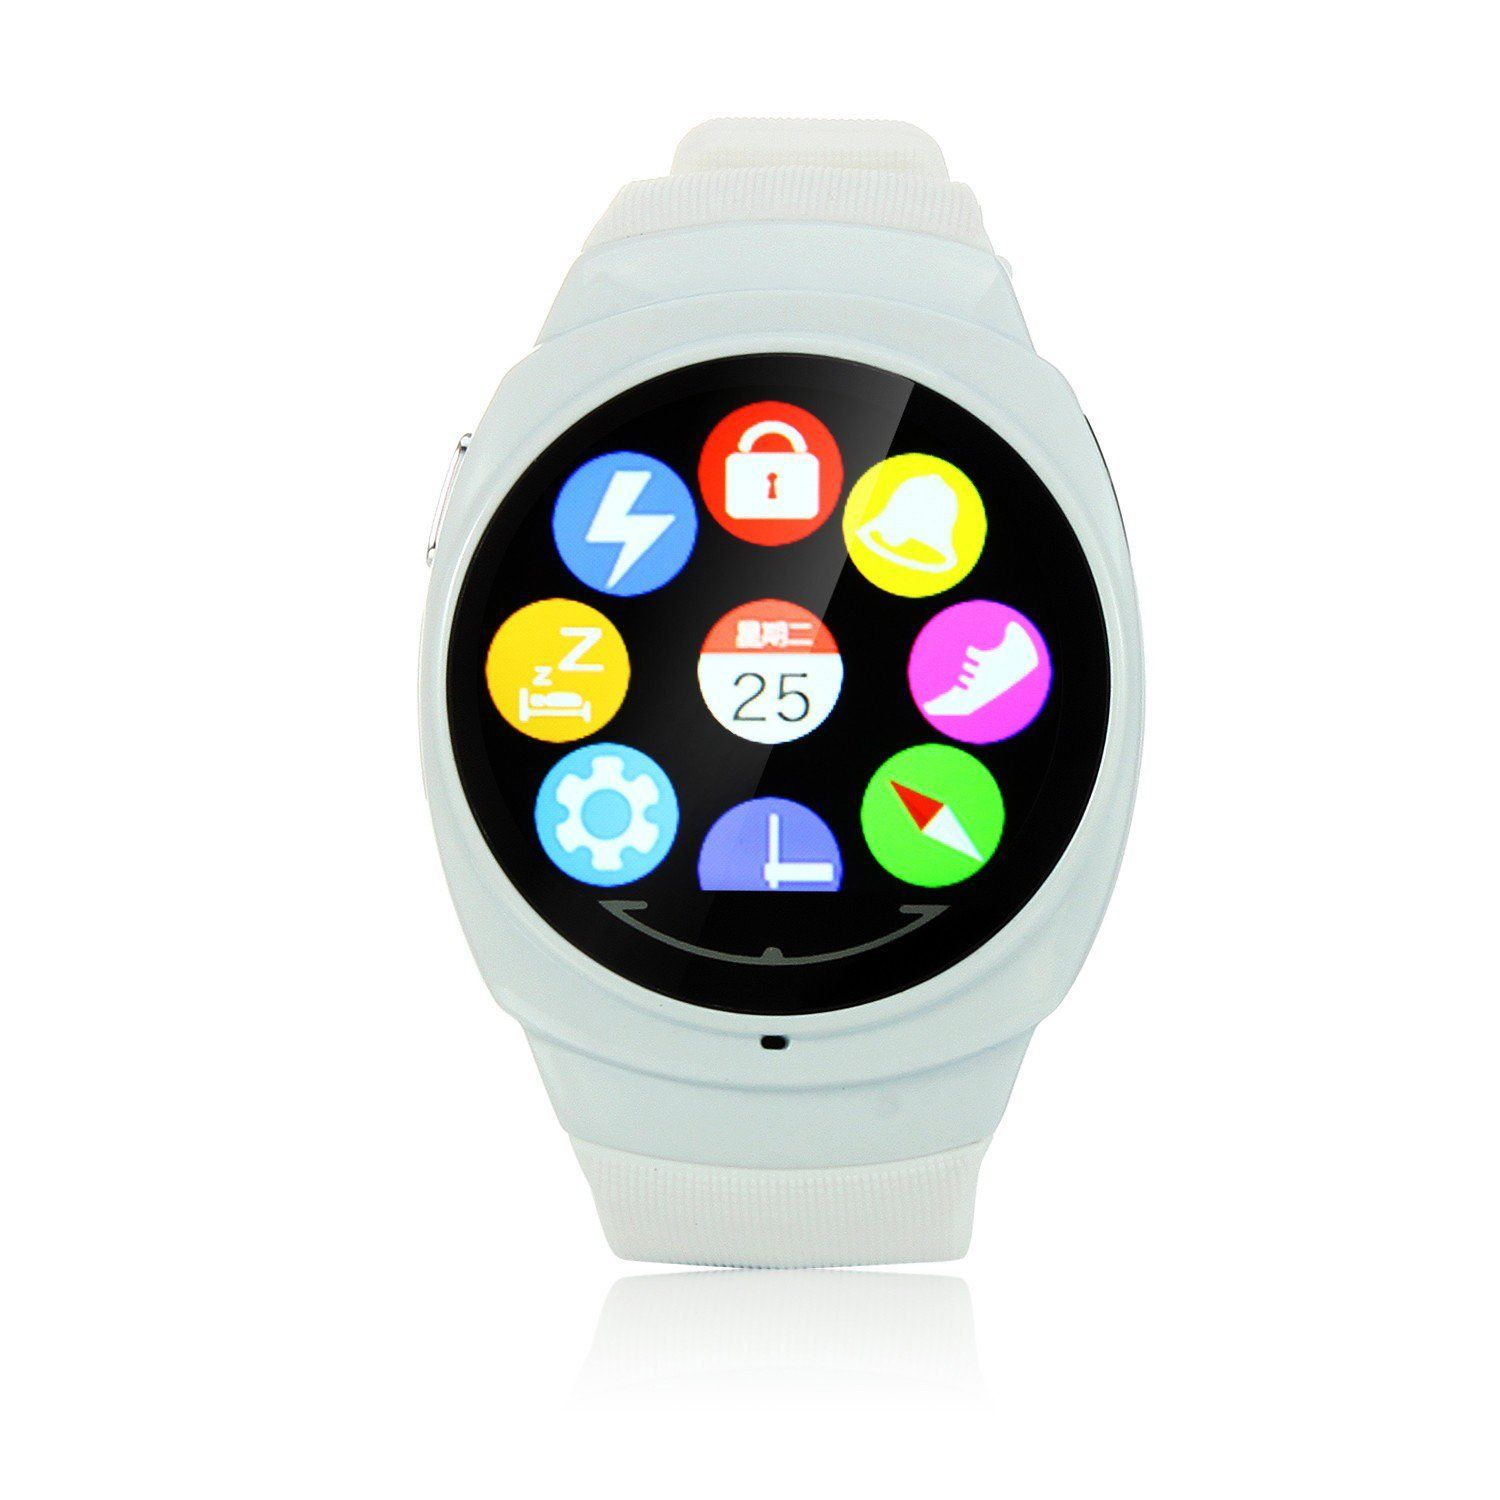 Uwatch UO 1.44 inch Touch Screen BT 4.0 Health Smart Watch